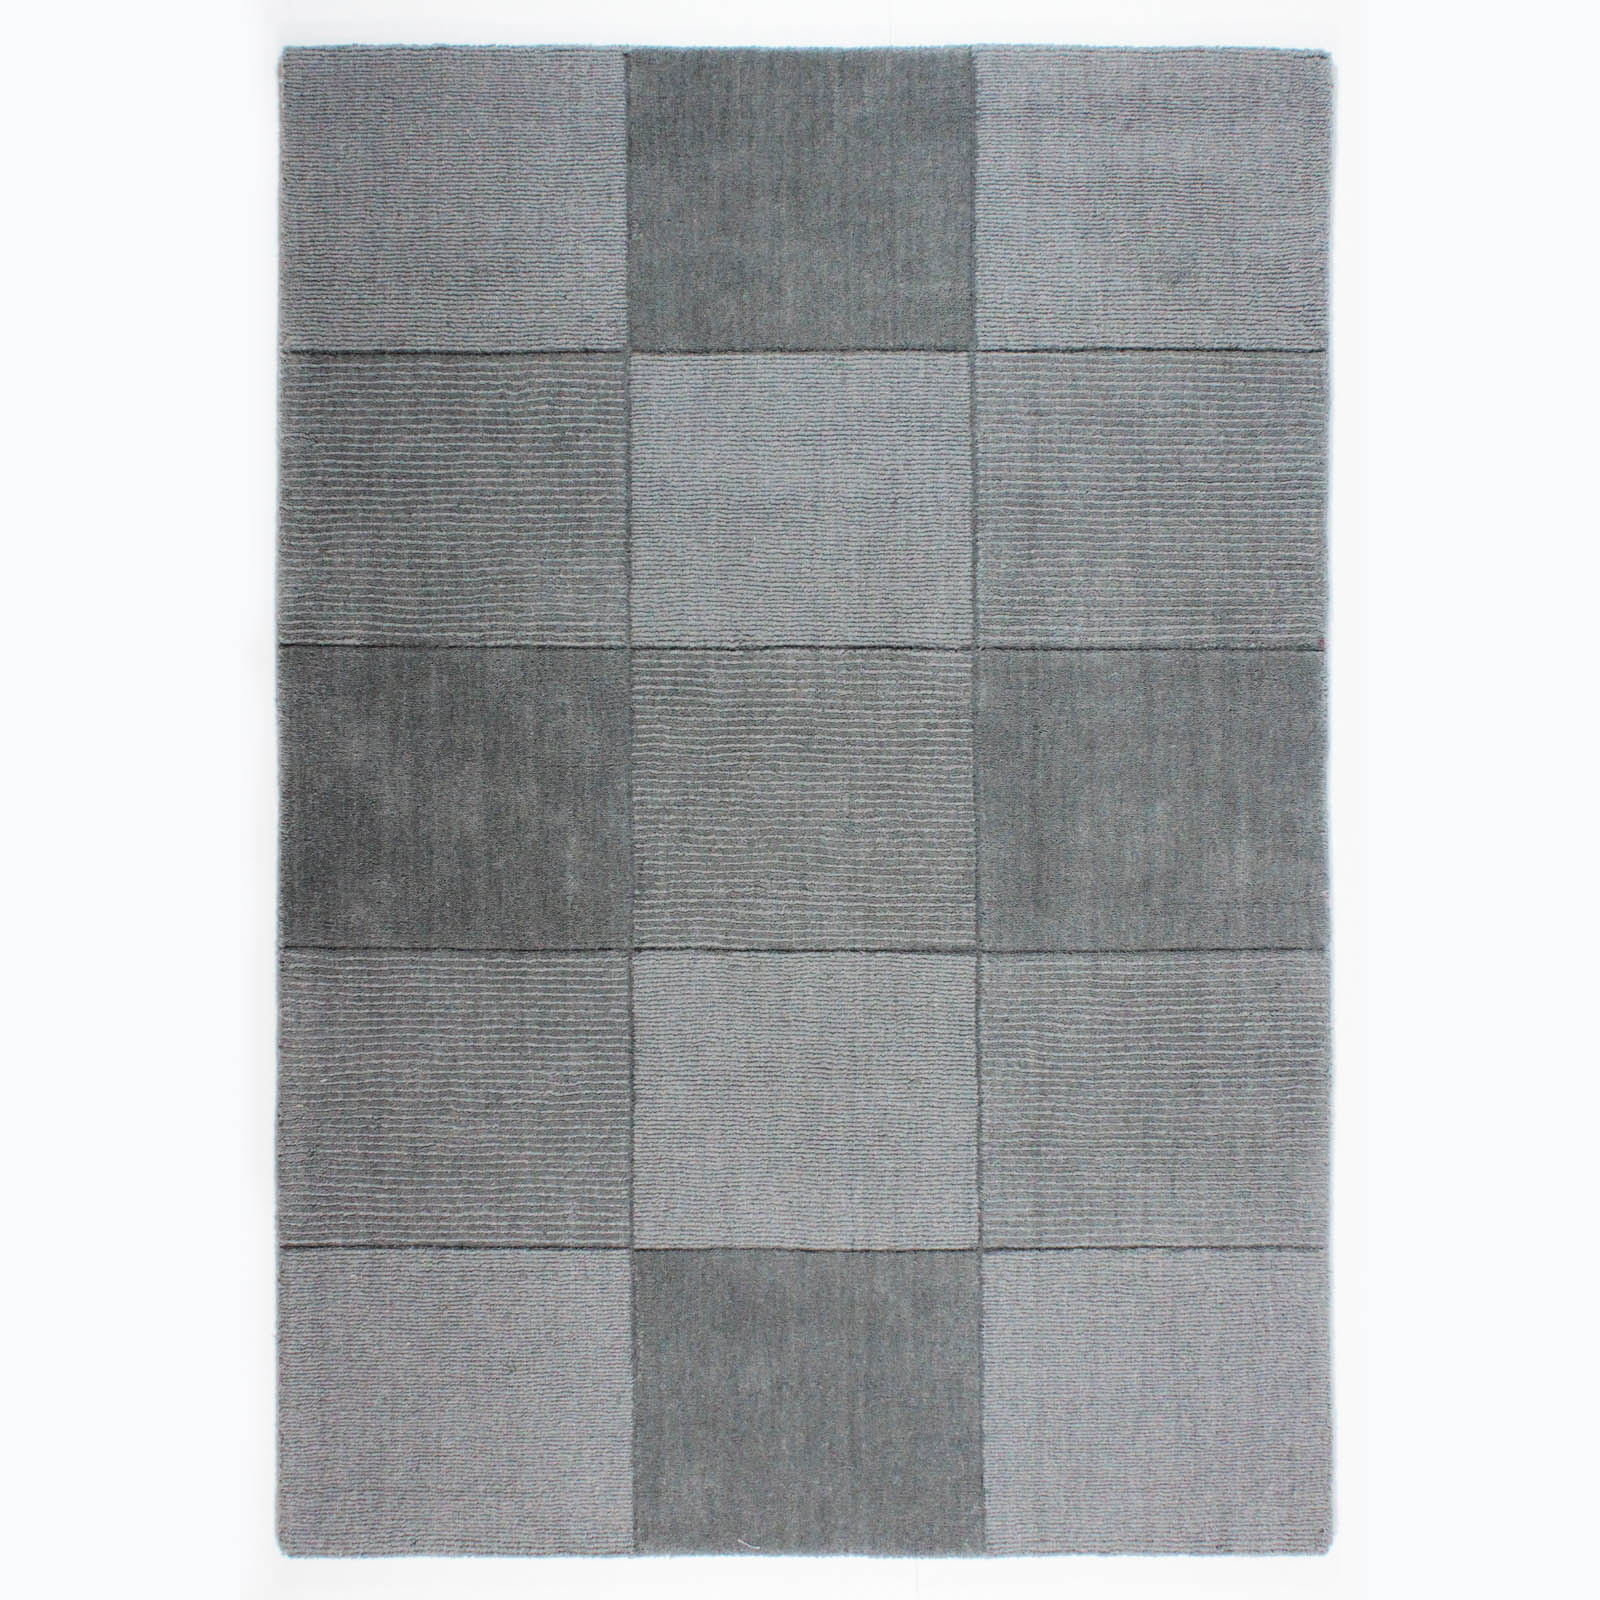 Wool Squares Rugs in Light Grey